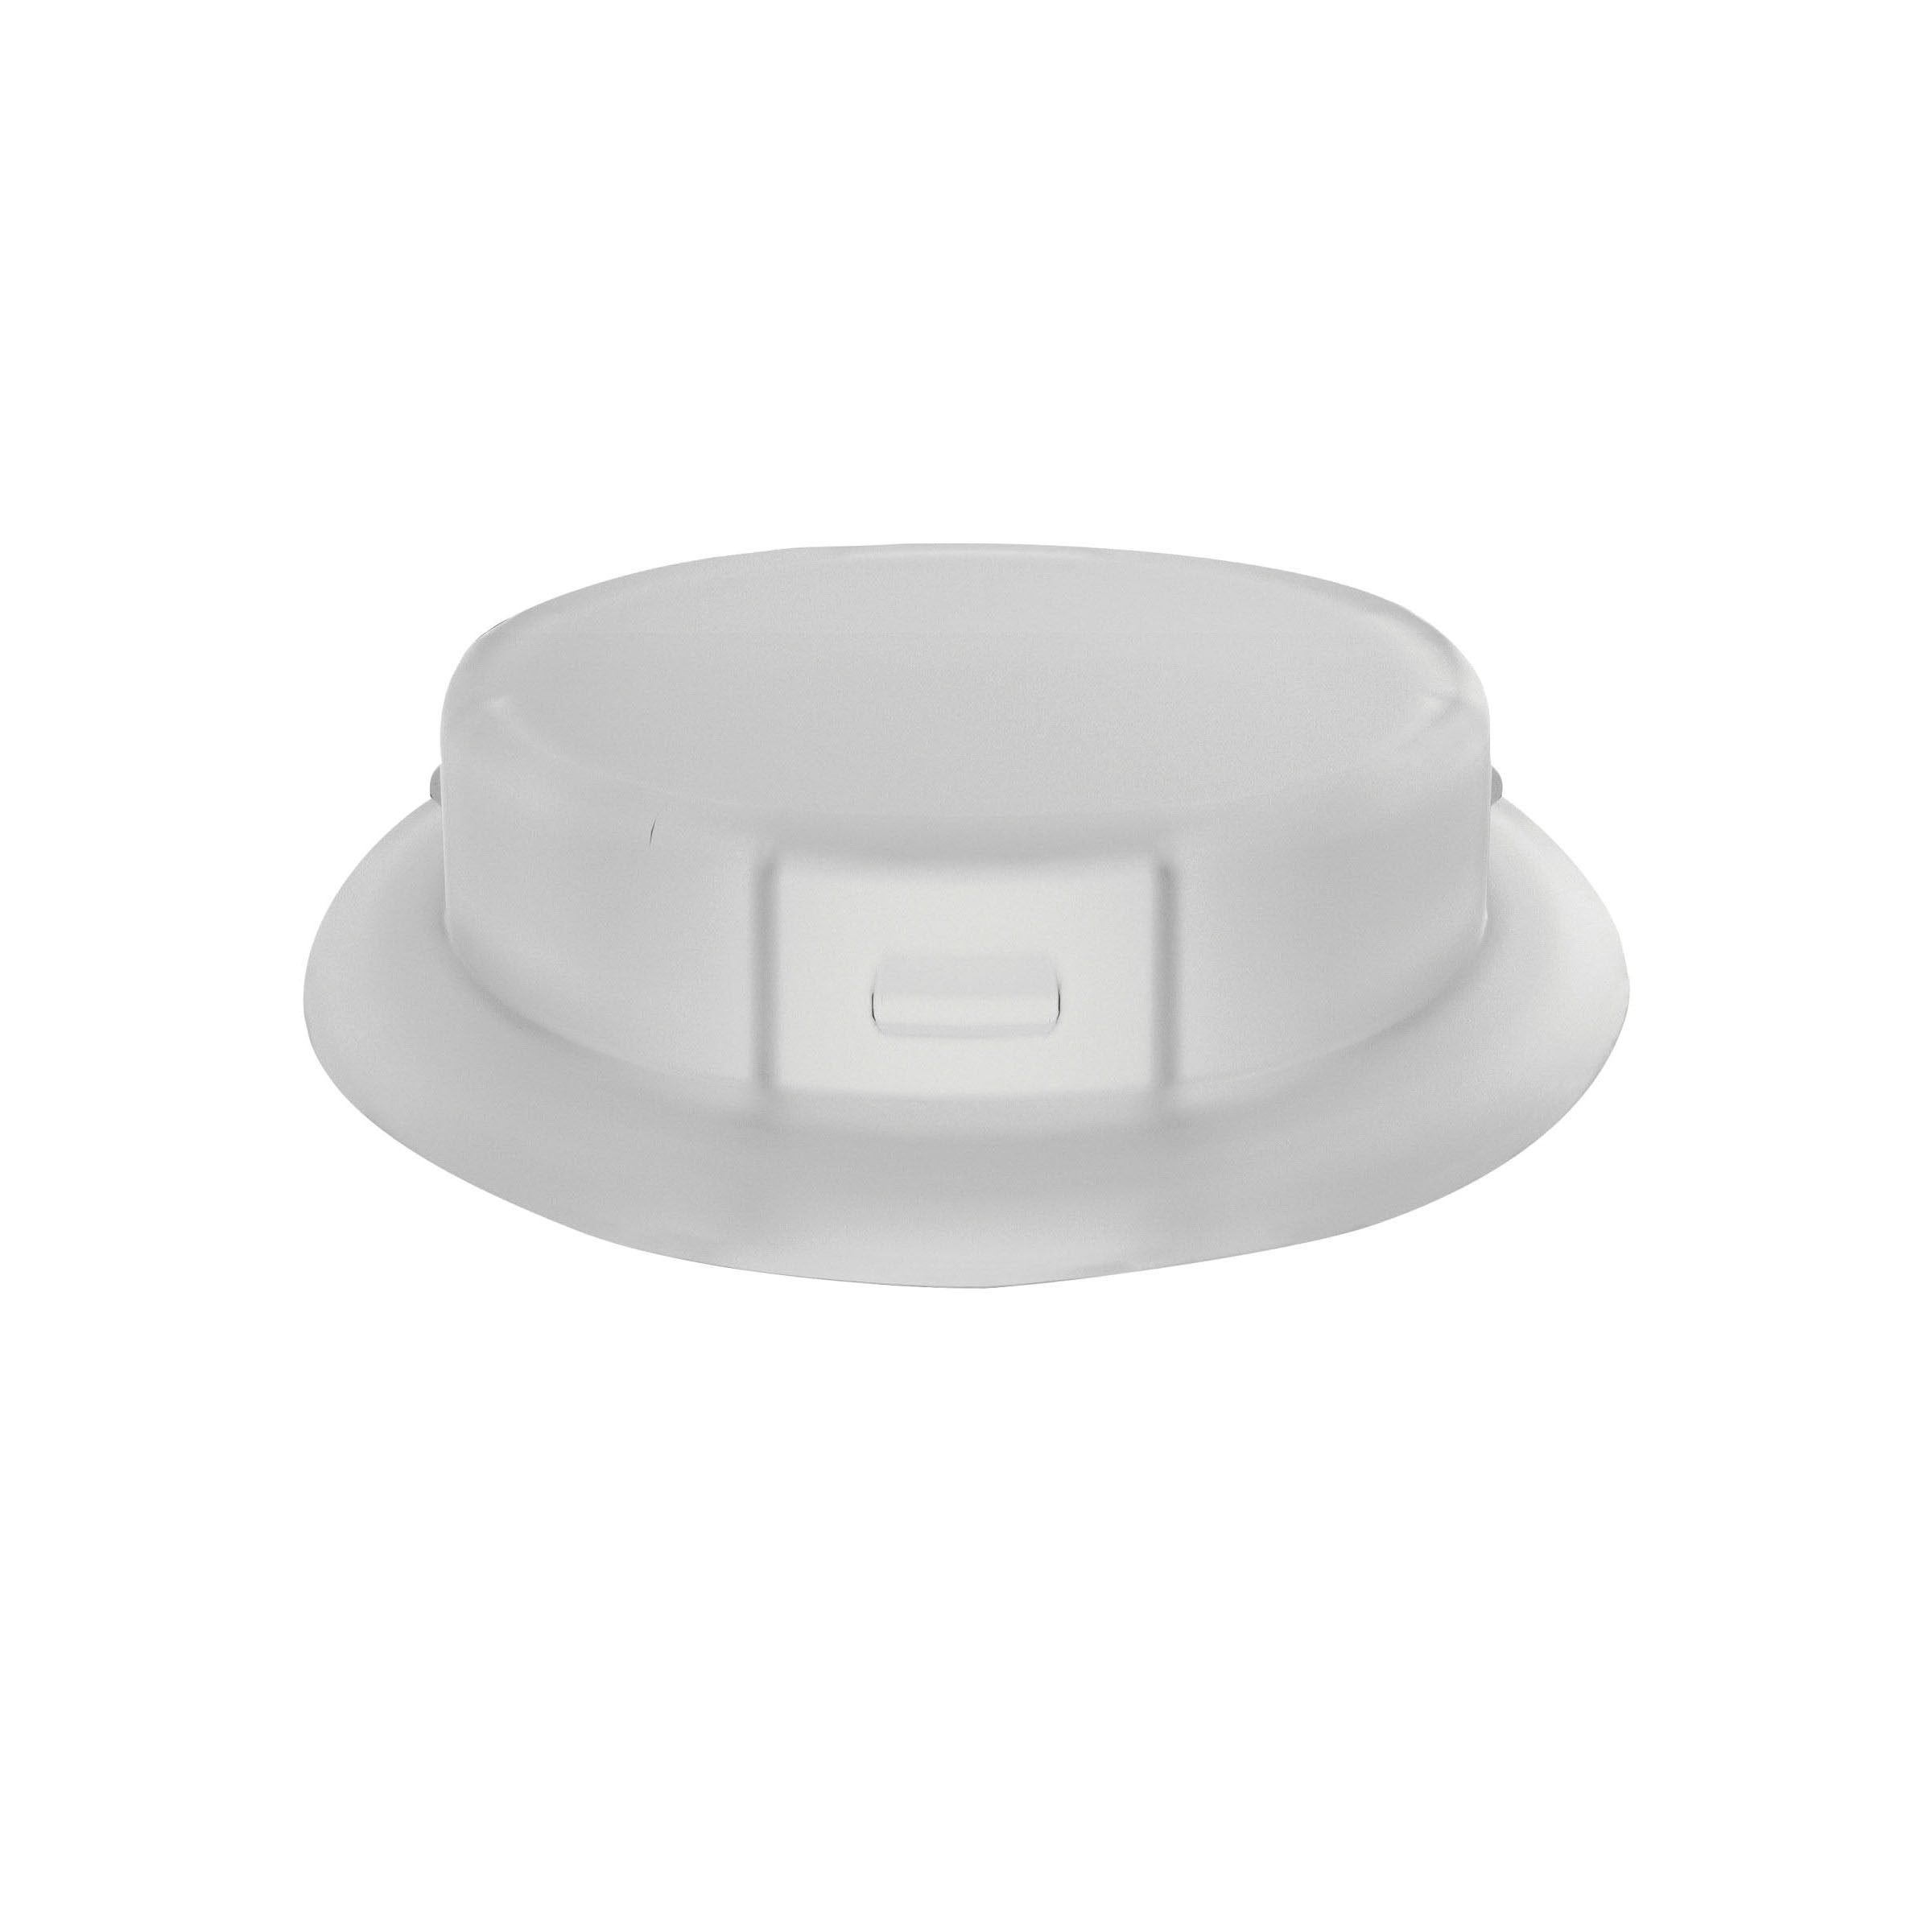 Justrite® 12863 Closed Carboy Cap Adapter, 3.2 in Dia x 53 mm Mouth, Polypropylene, White